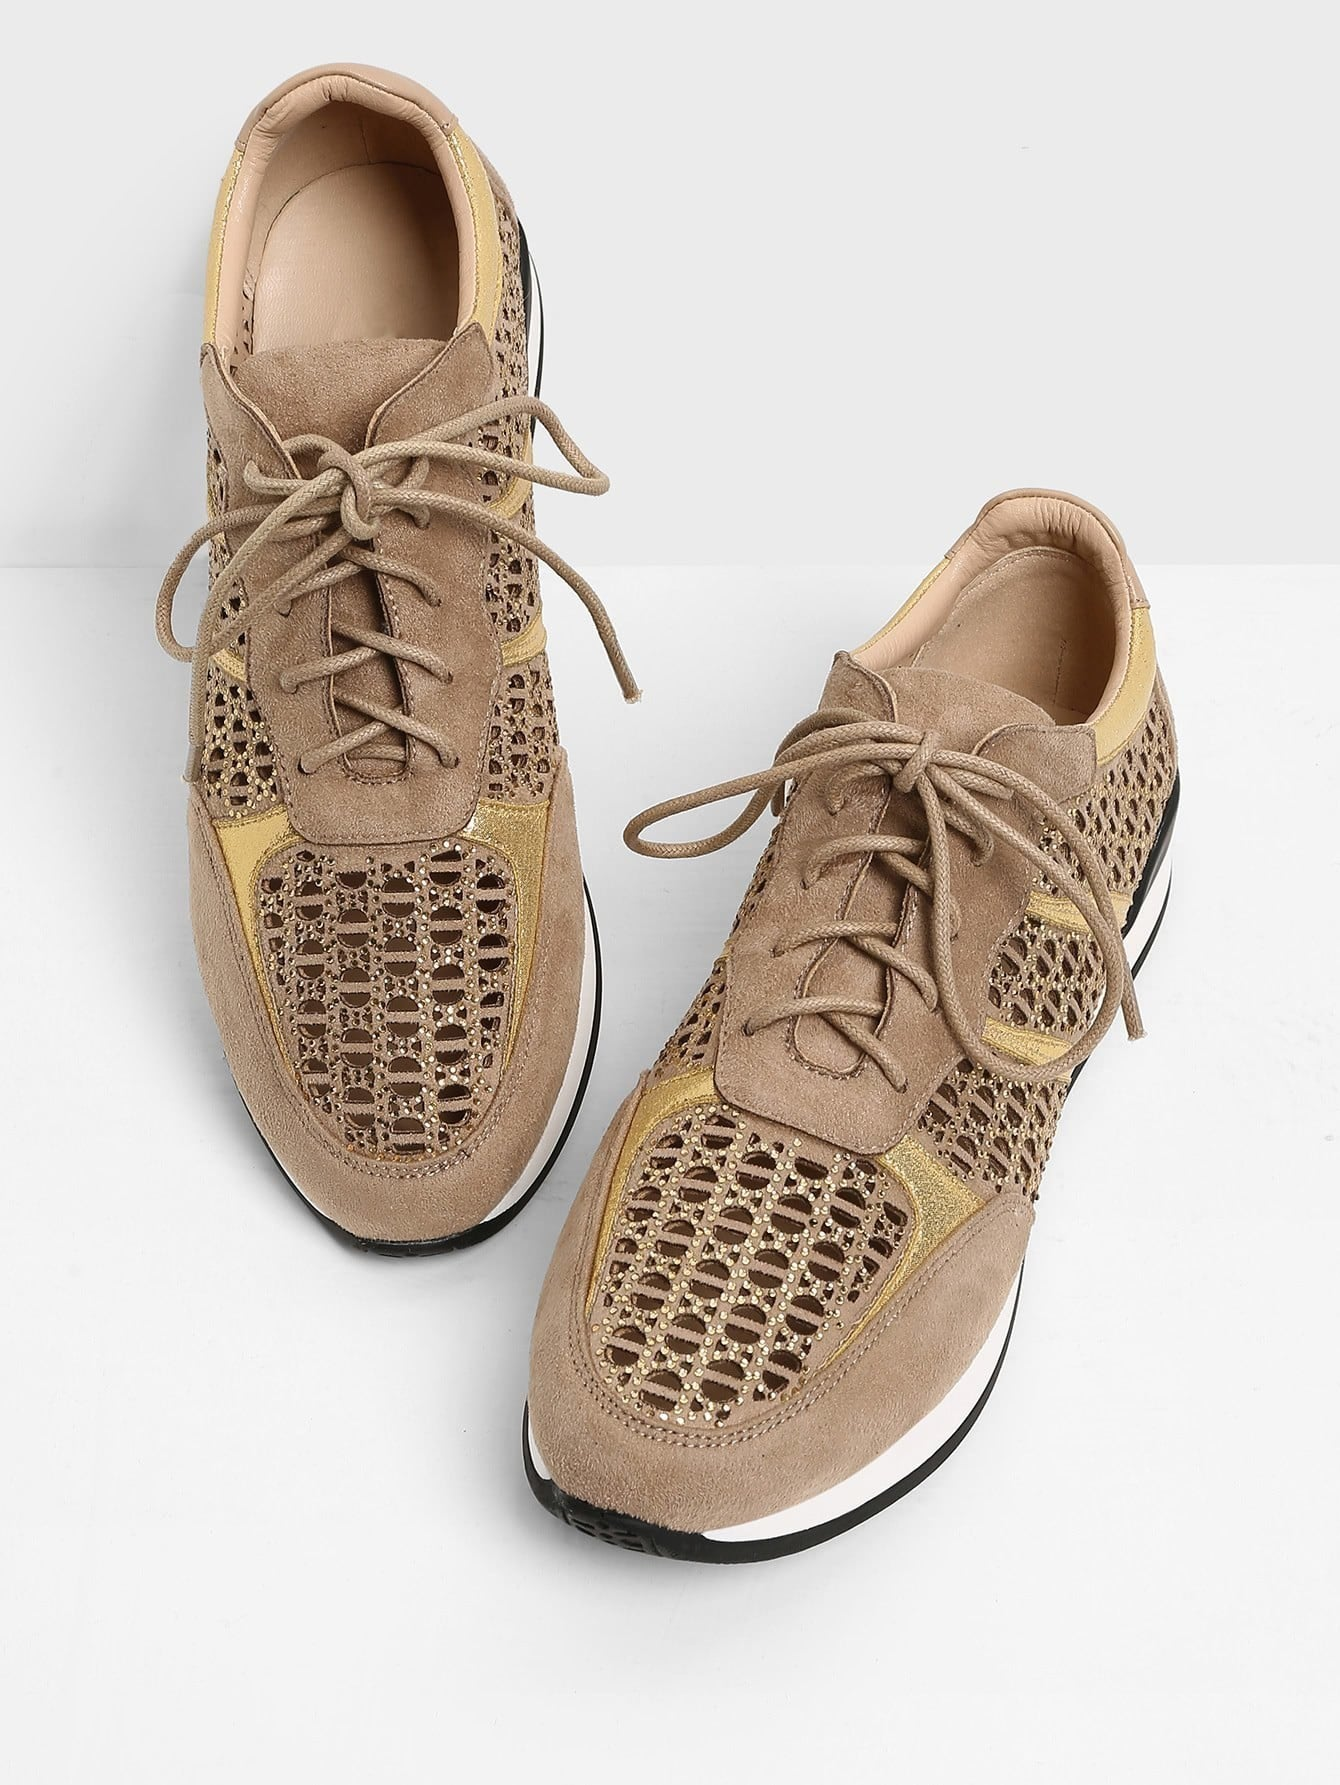 Cut Out Detail Lace Up Sneakers With Rhinestone